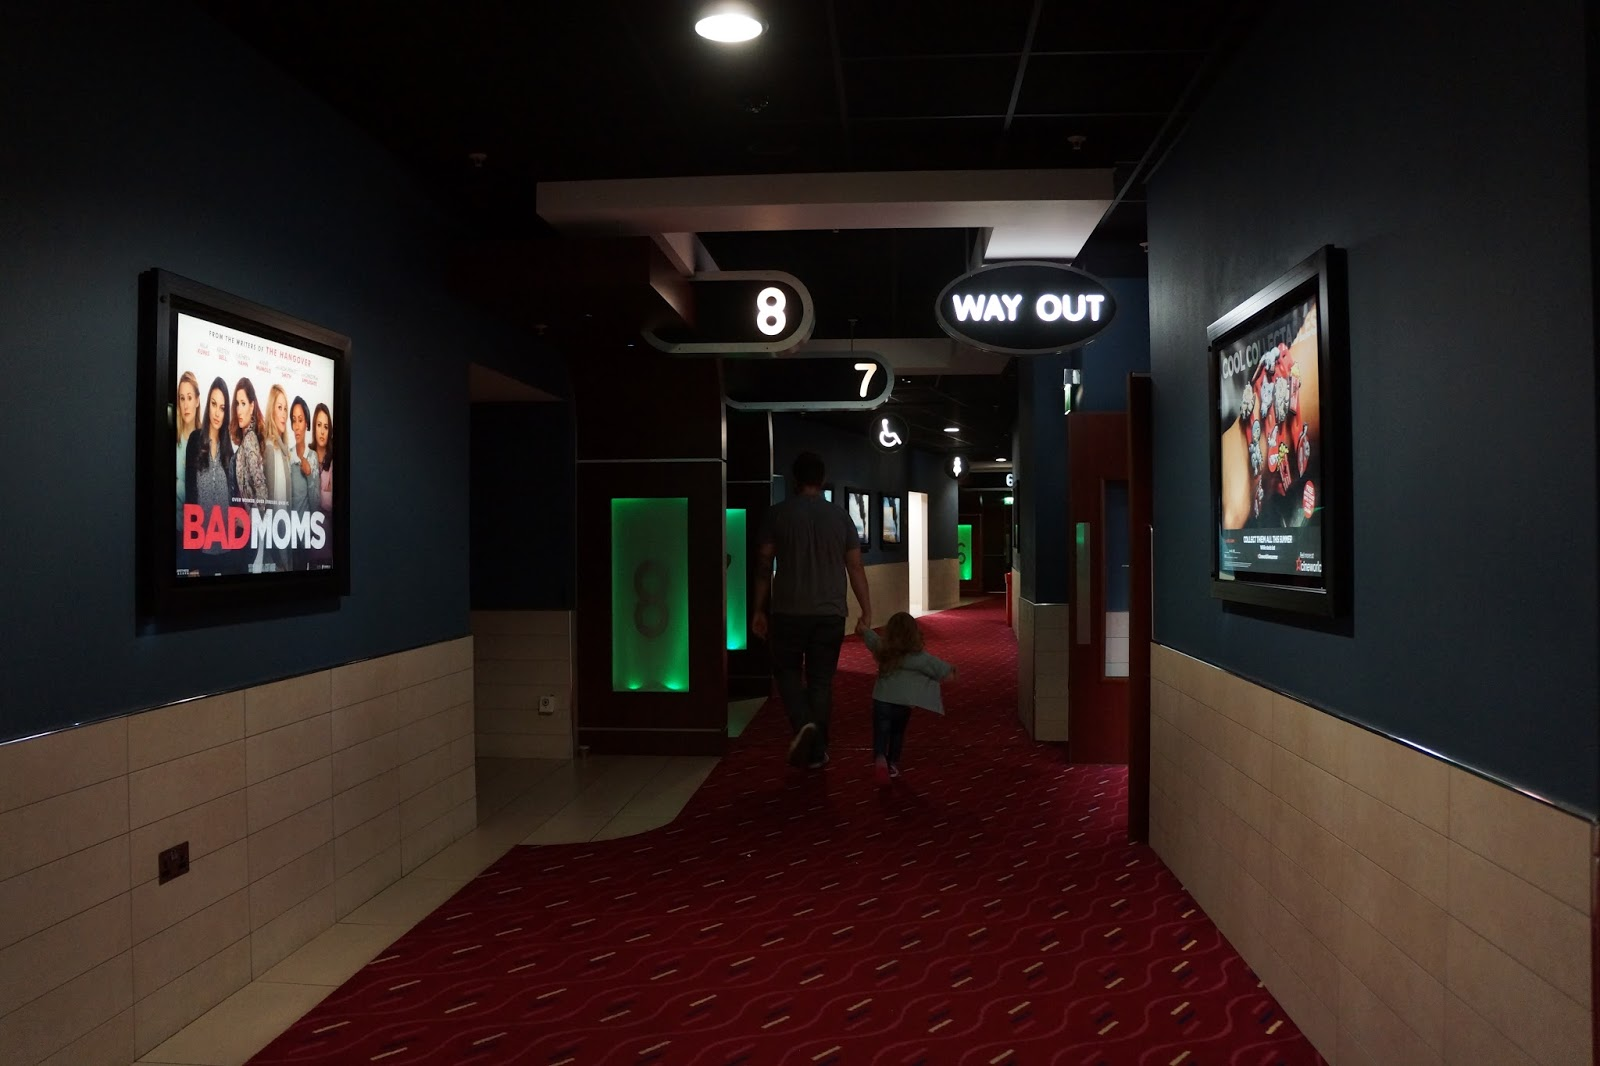 walking inside the corridor at cineworld theatres at the o2